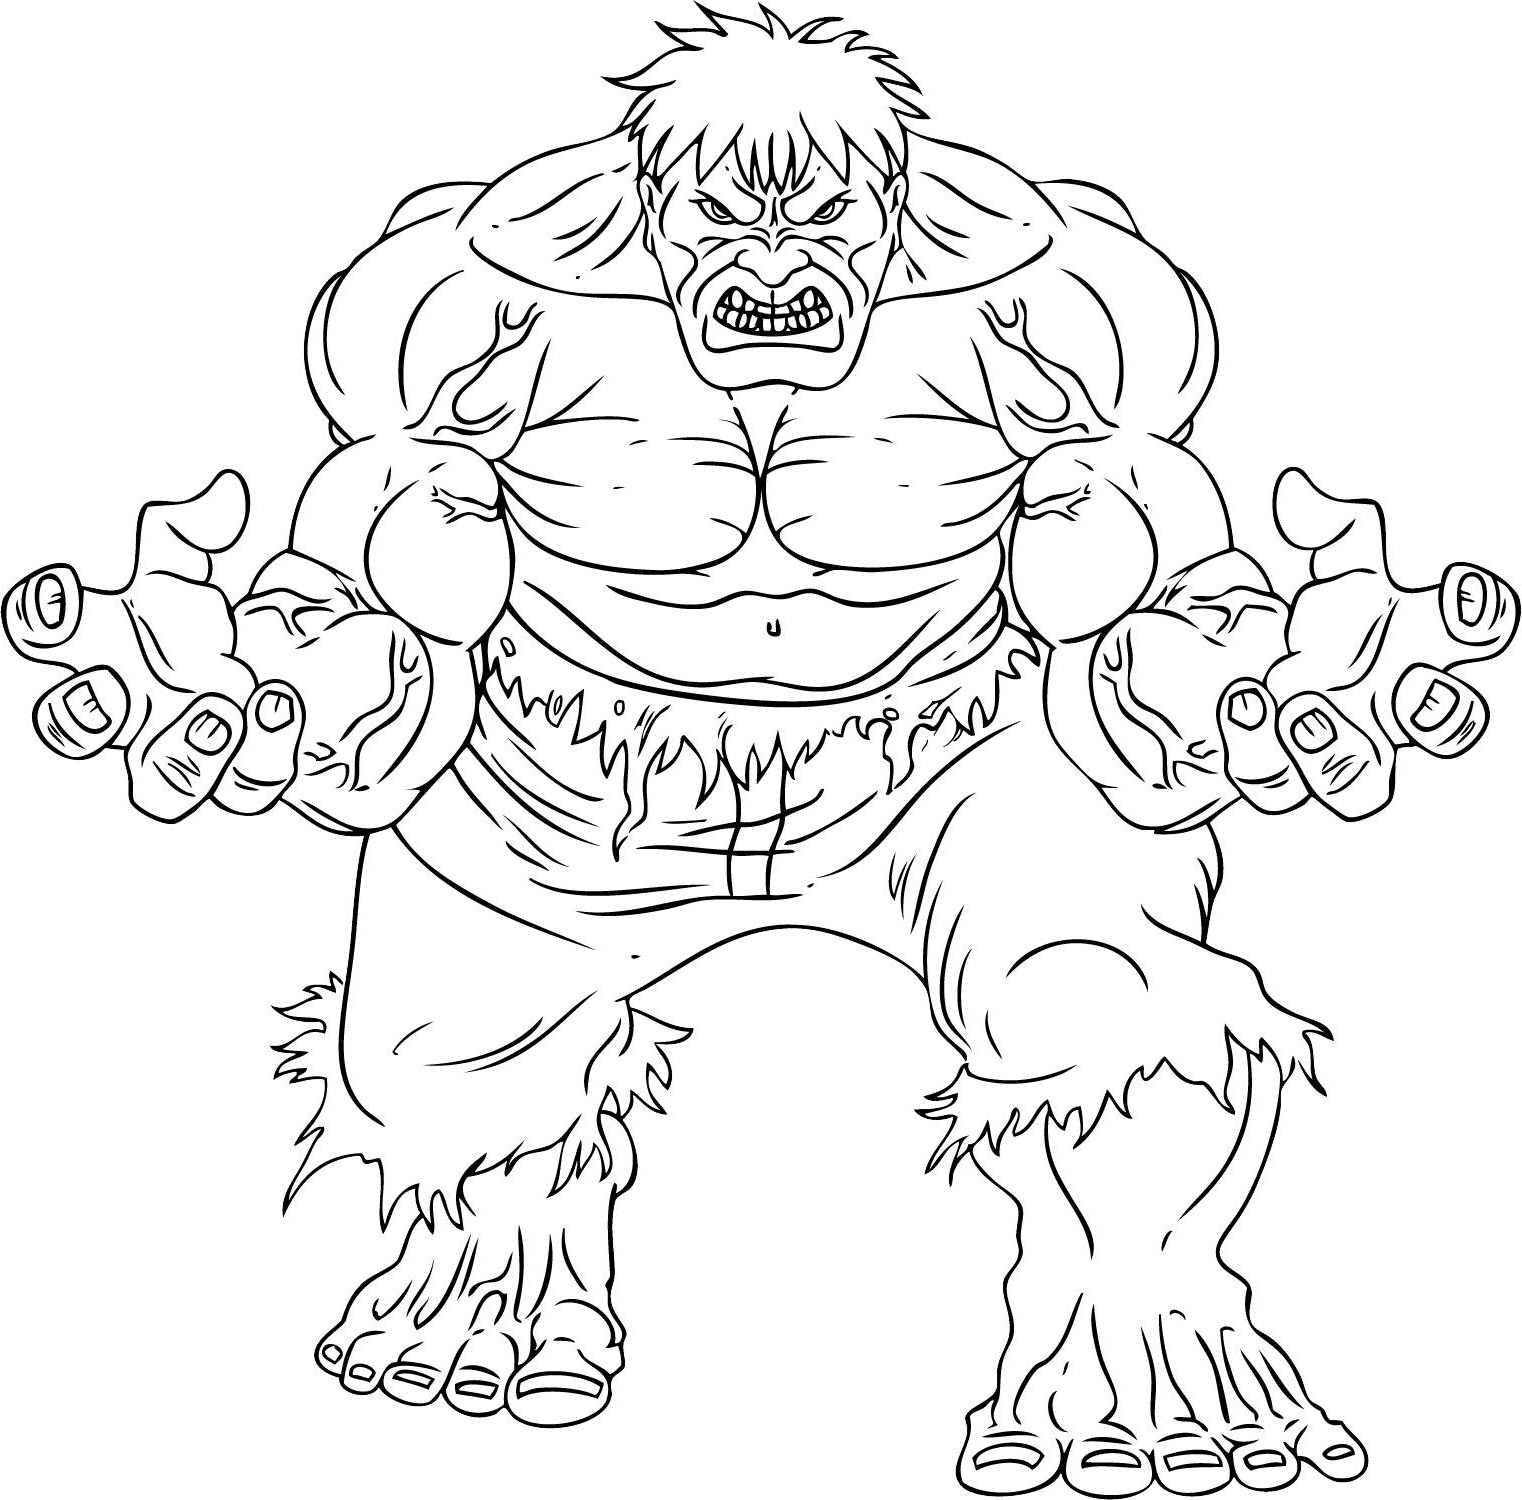 Hulk coloring page to download for free